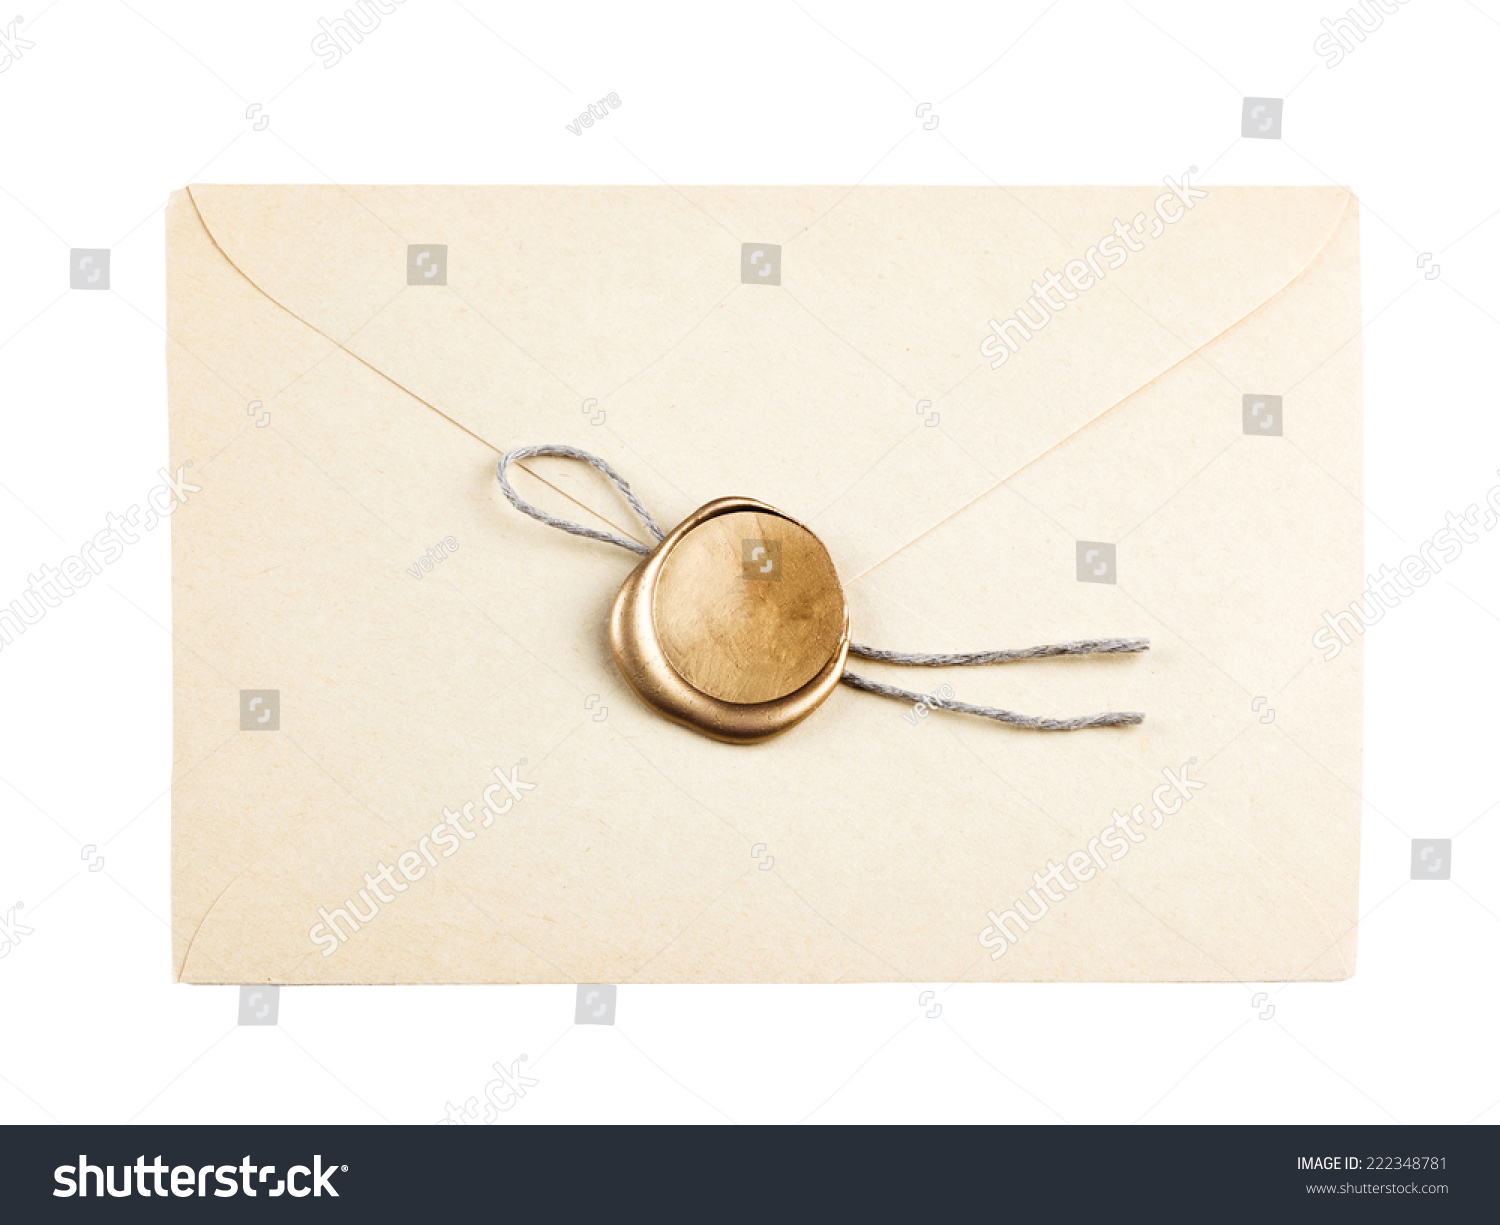 Gold Mail: Old Mail Envelope Gold Wax Seal Stock Photo 222348781